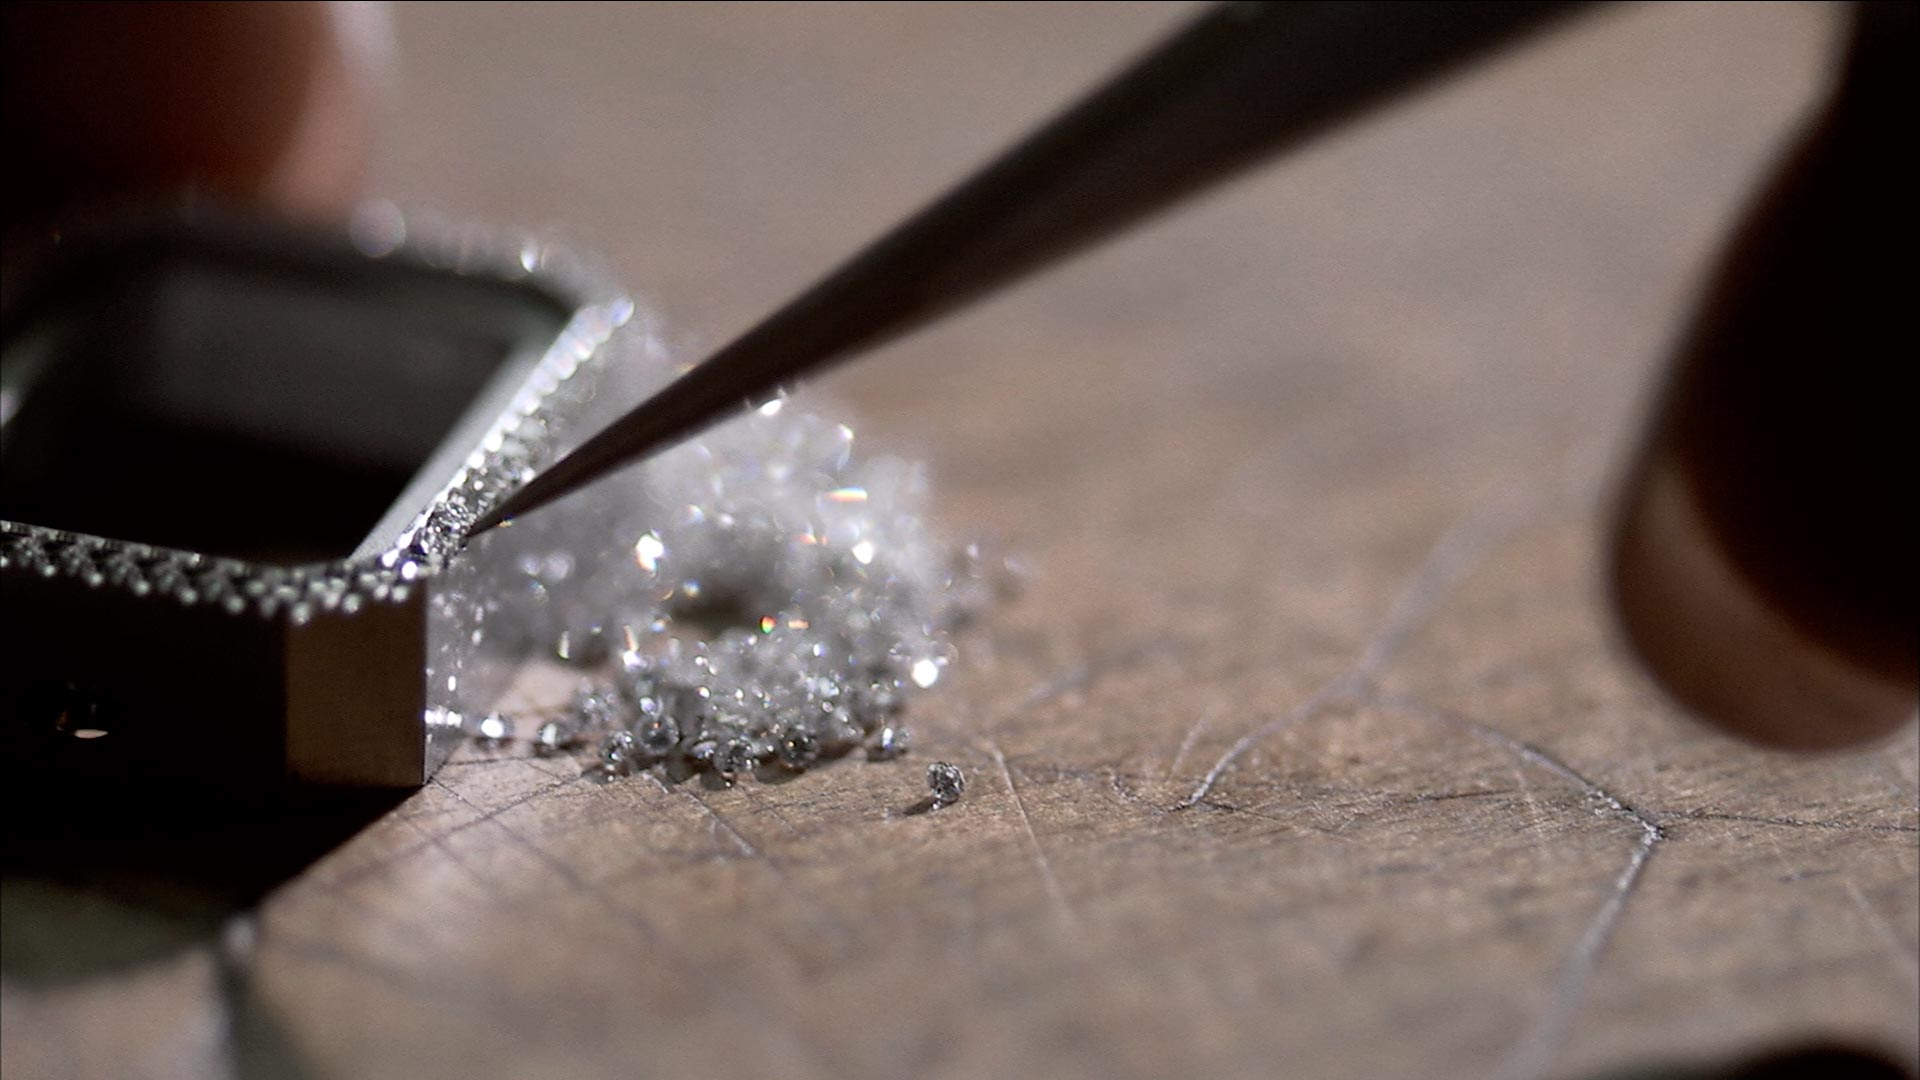 SEE THE FILM The jeweler's precision